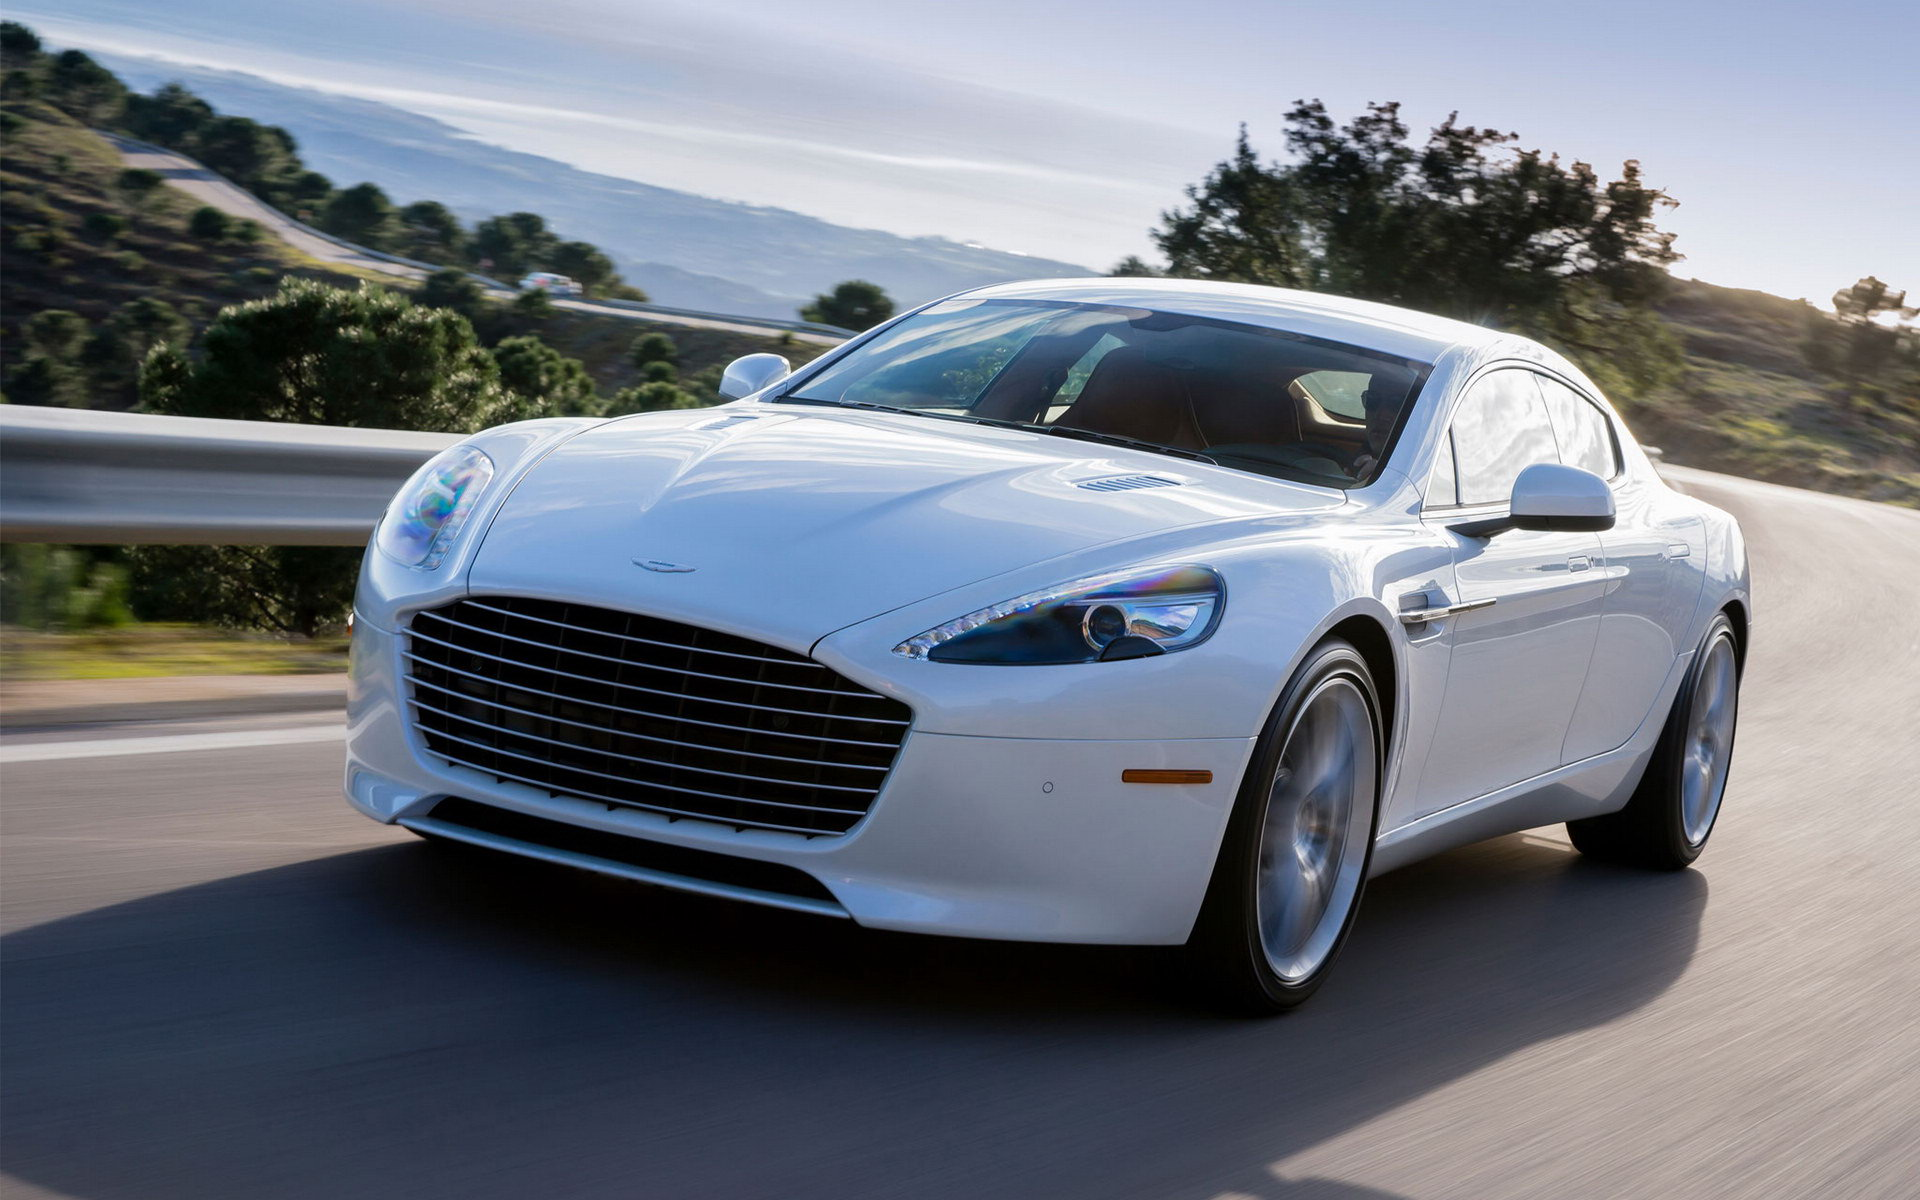 rapide s – Automobile Wallpapers in HD | Iphone,| Android,| Desktop 14 Wallpaper